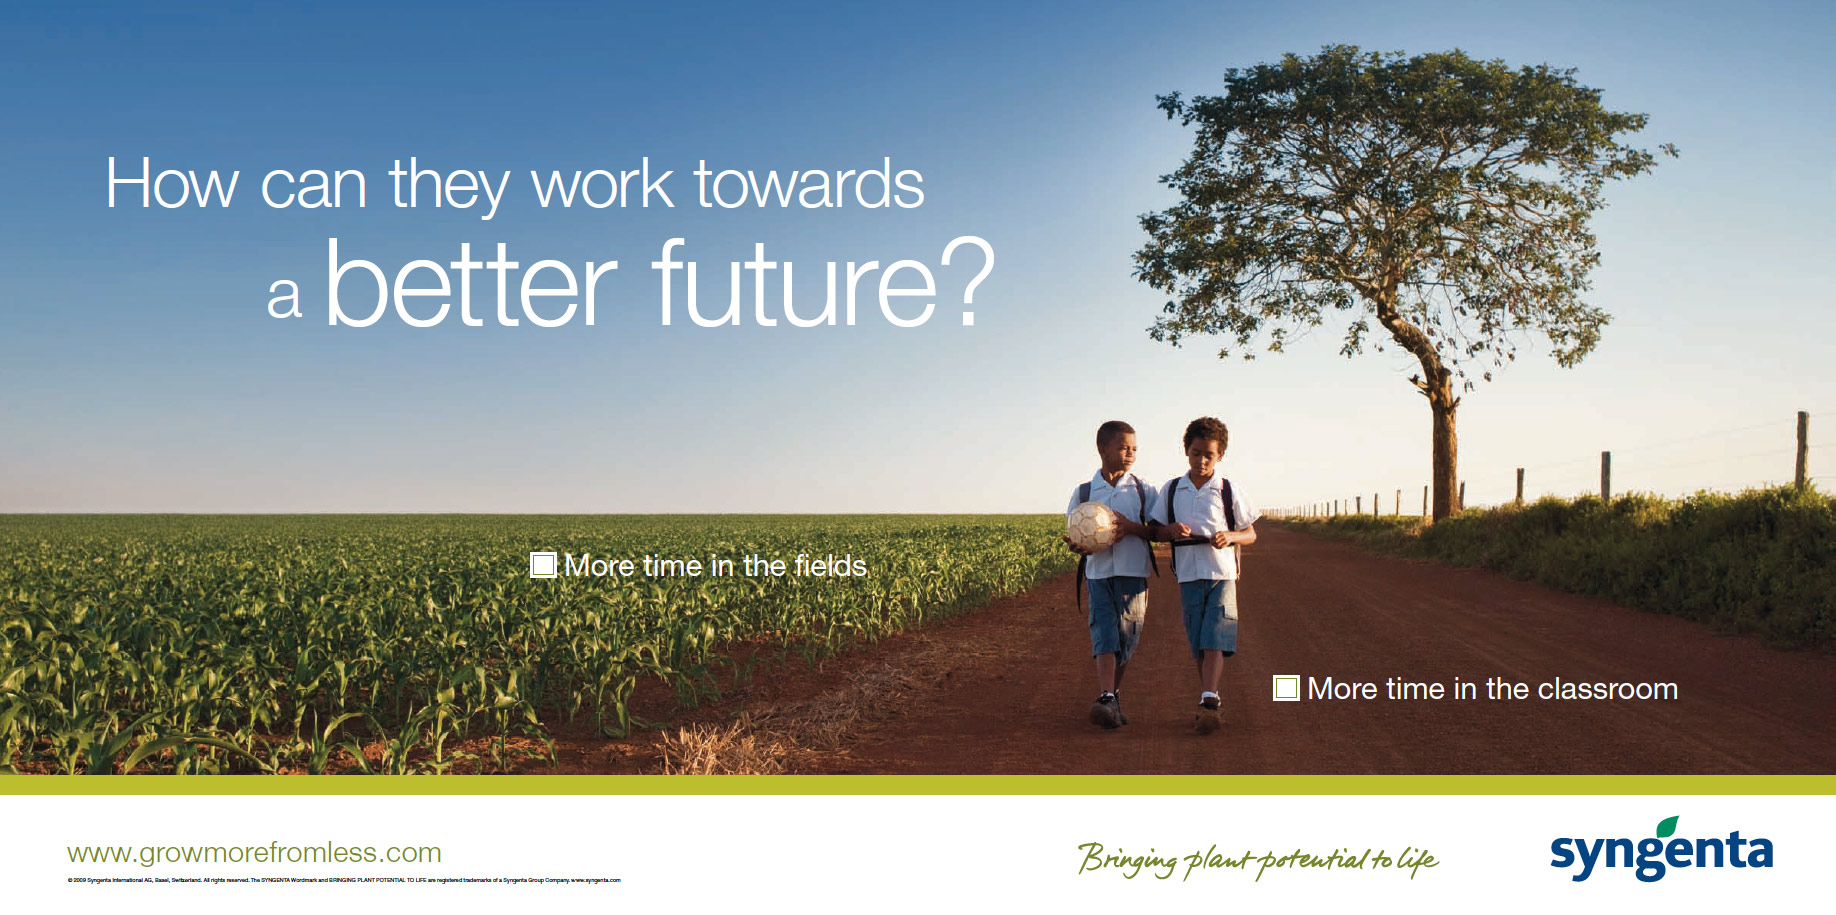 Syngenta-advertising-campaign-1